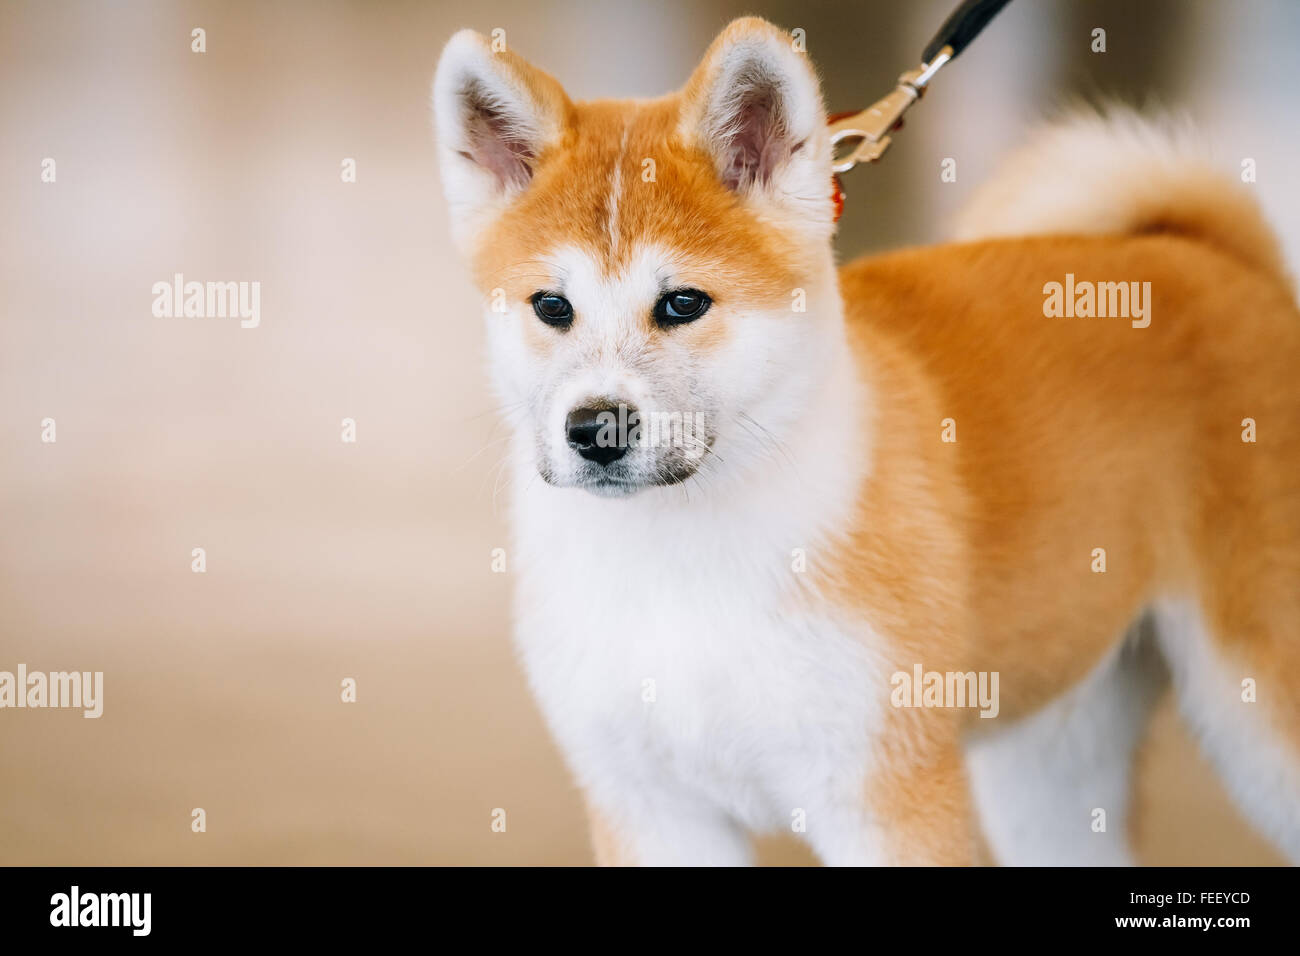 Young White And Red Akita Inu Dog Japanese Akita Puppy Close Up Stock Photo Alamy